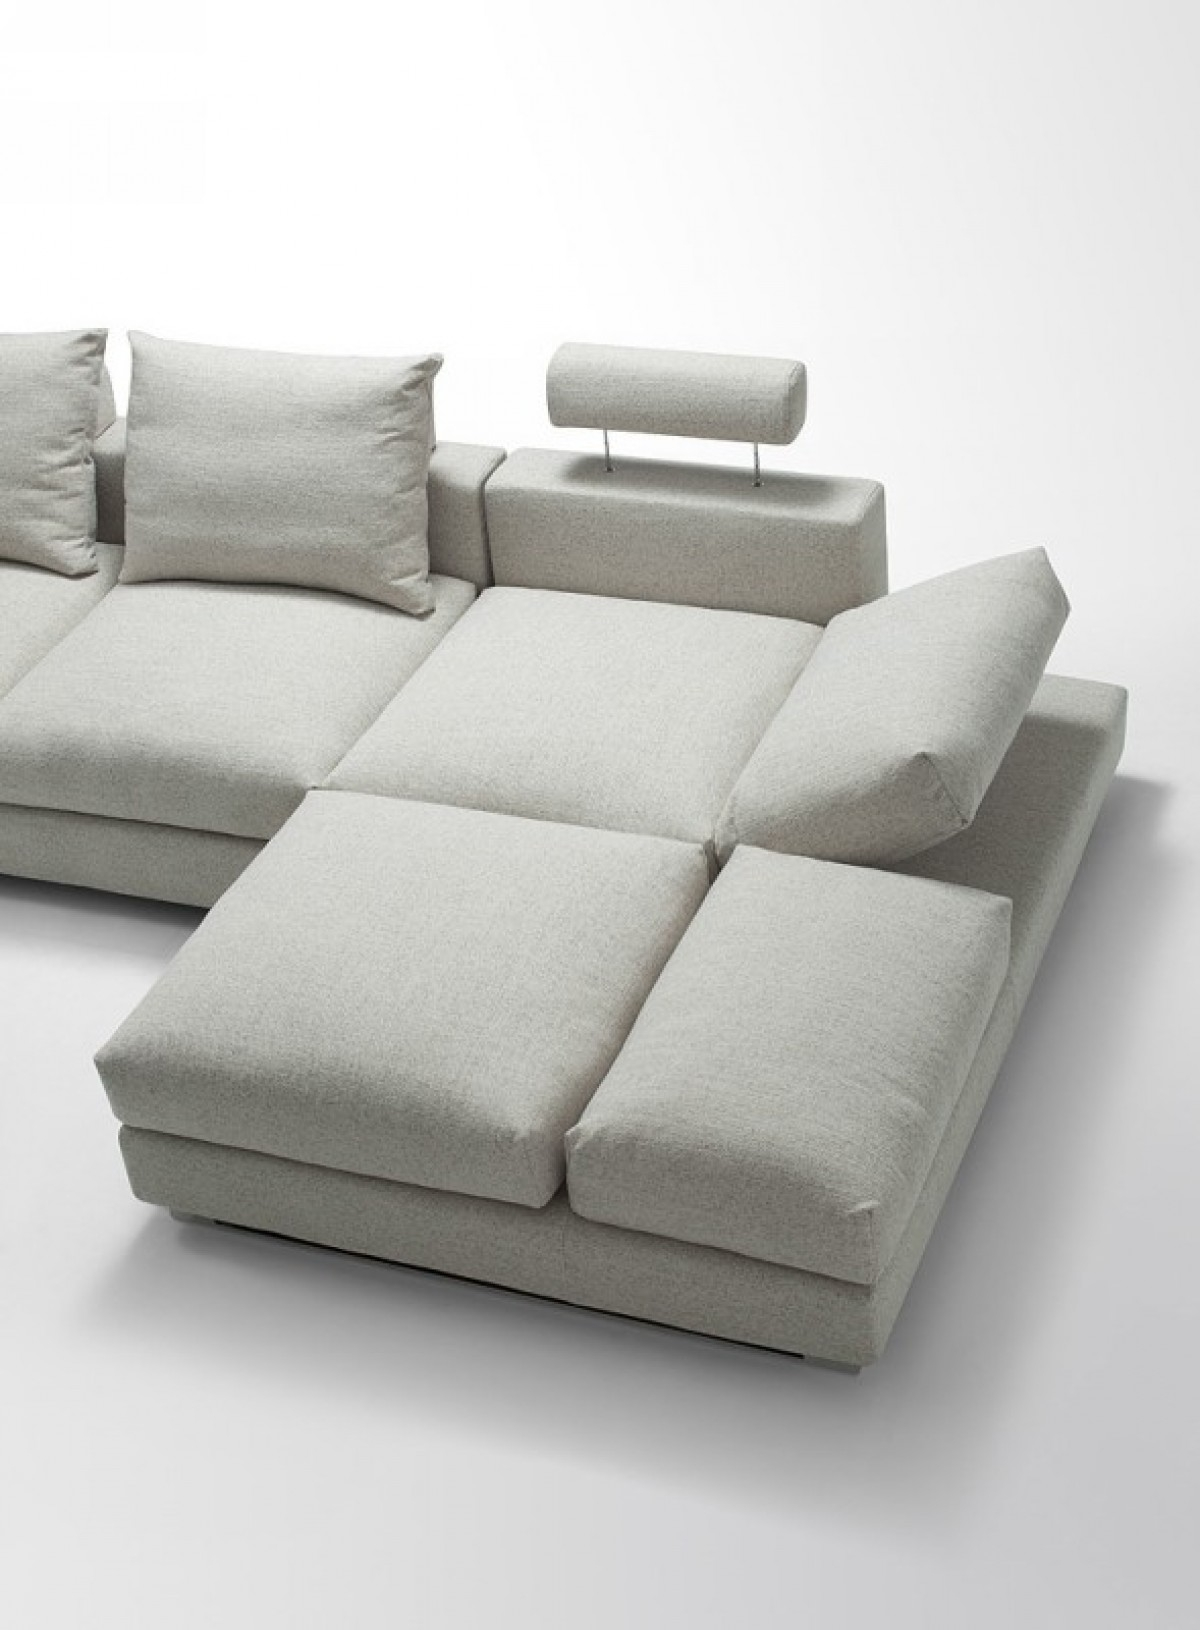 Divani Casa Vasto Modern Fabric Sectional Sofa With Down Feather With Down Feather Sectional Sofa (View 8 of 15)